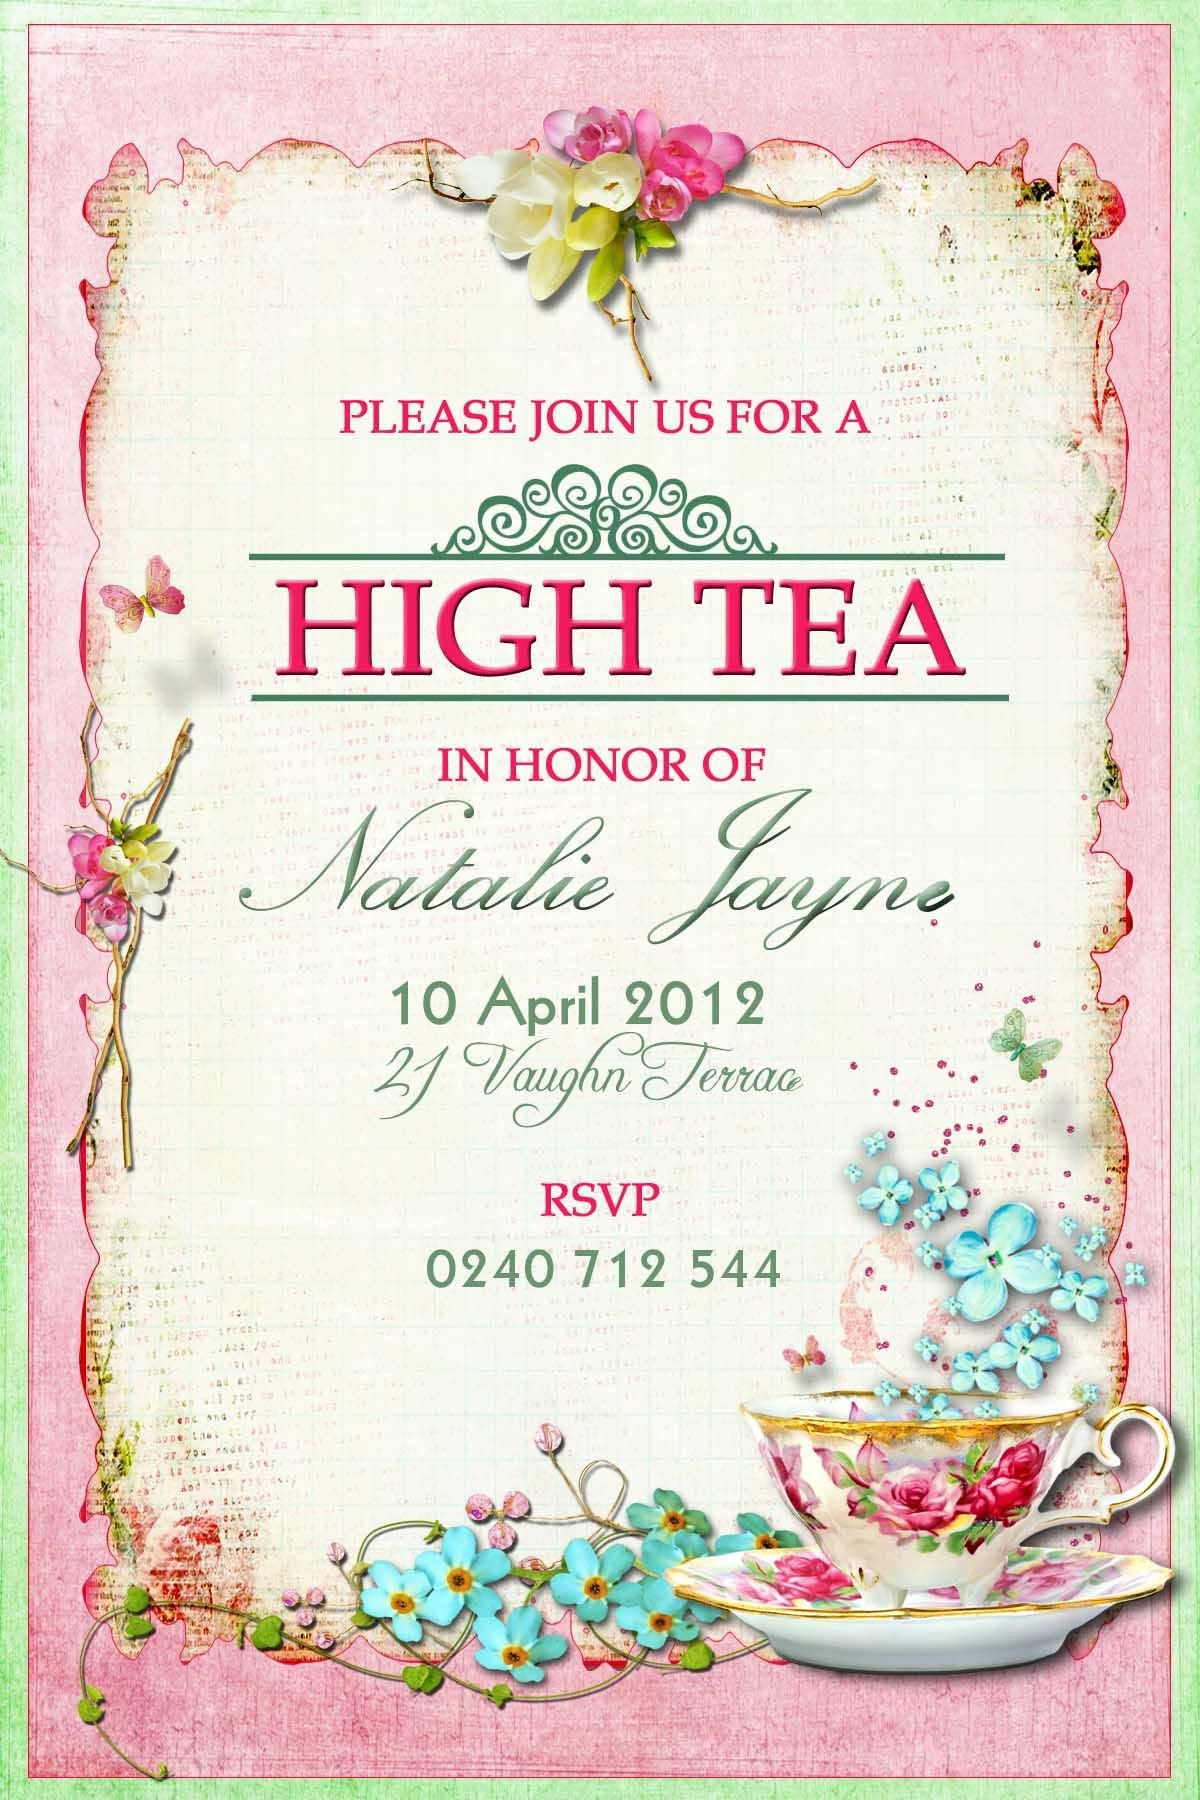 Tea Party Invitation Template Victorian High Tea Party Invitations Surprise Party